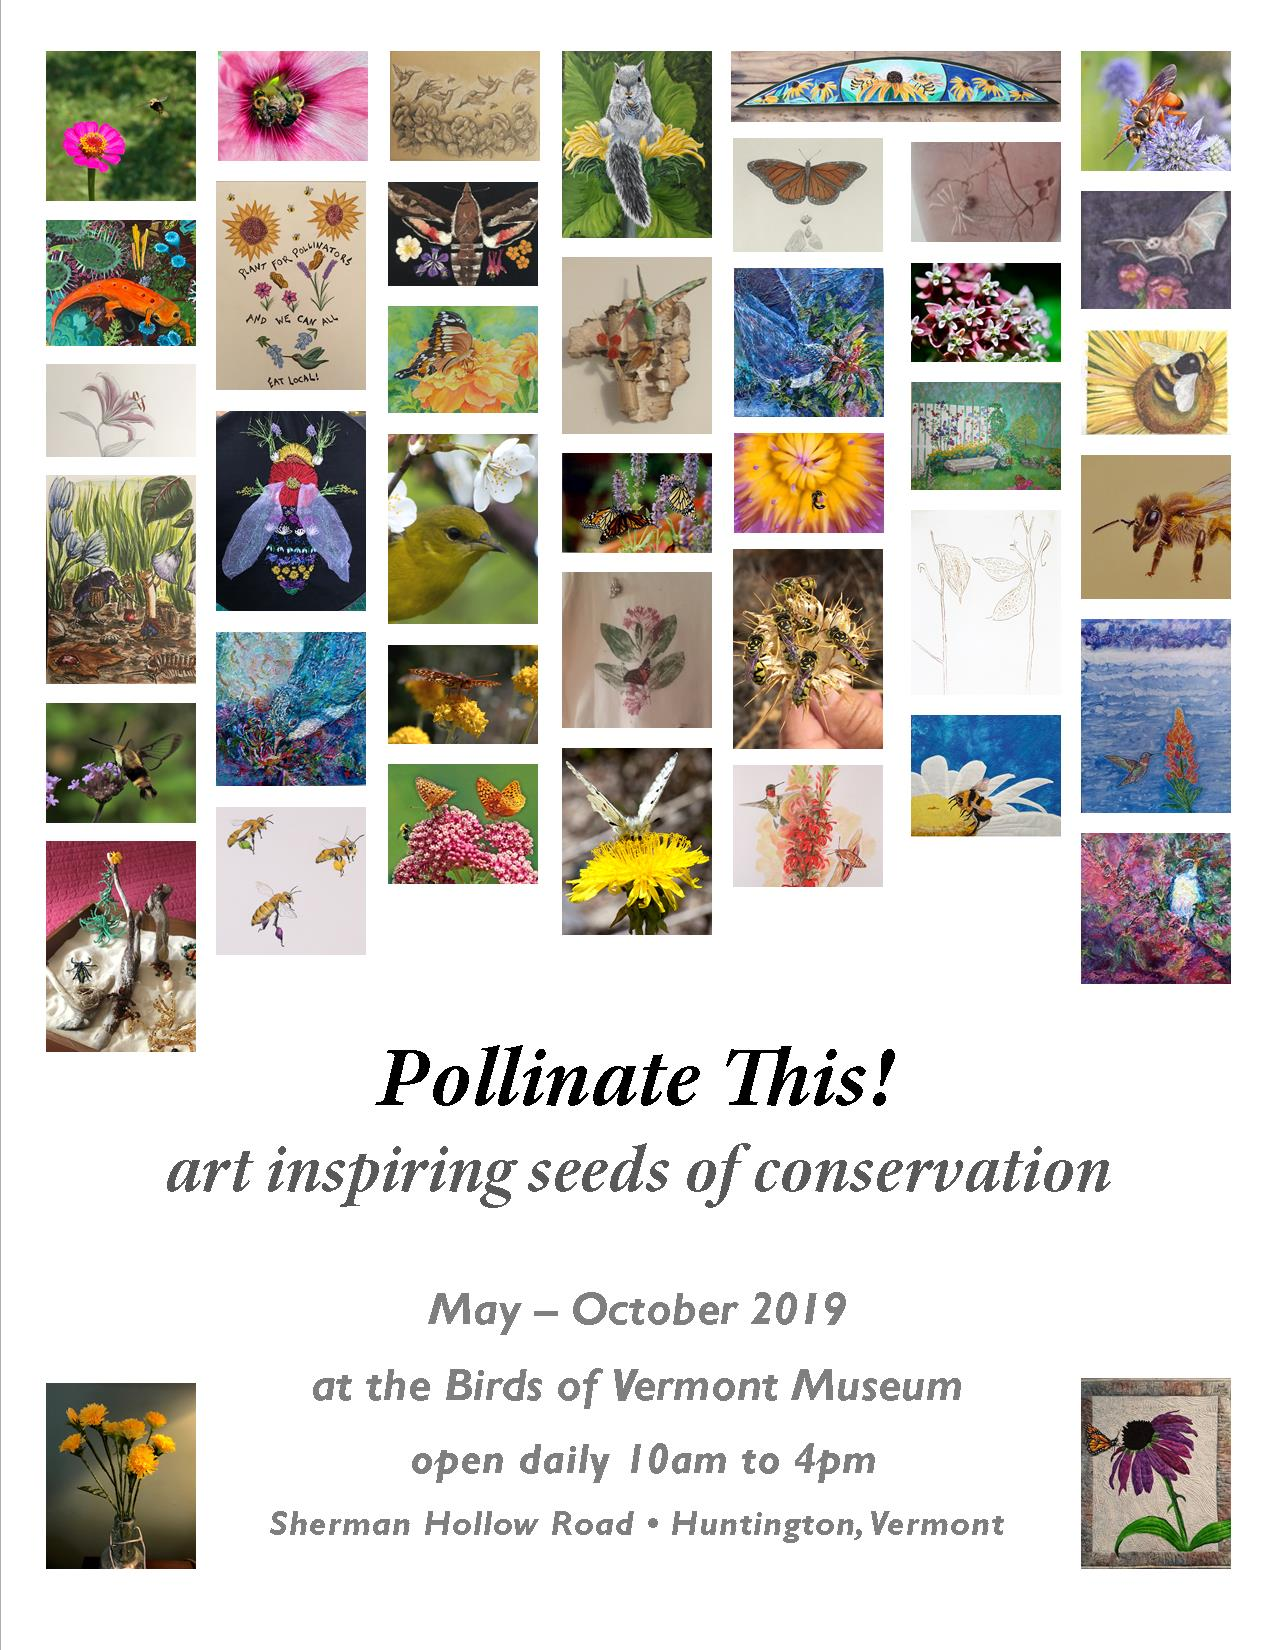 Thumbnails of art accepted for Pollinate This show